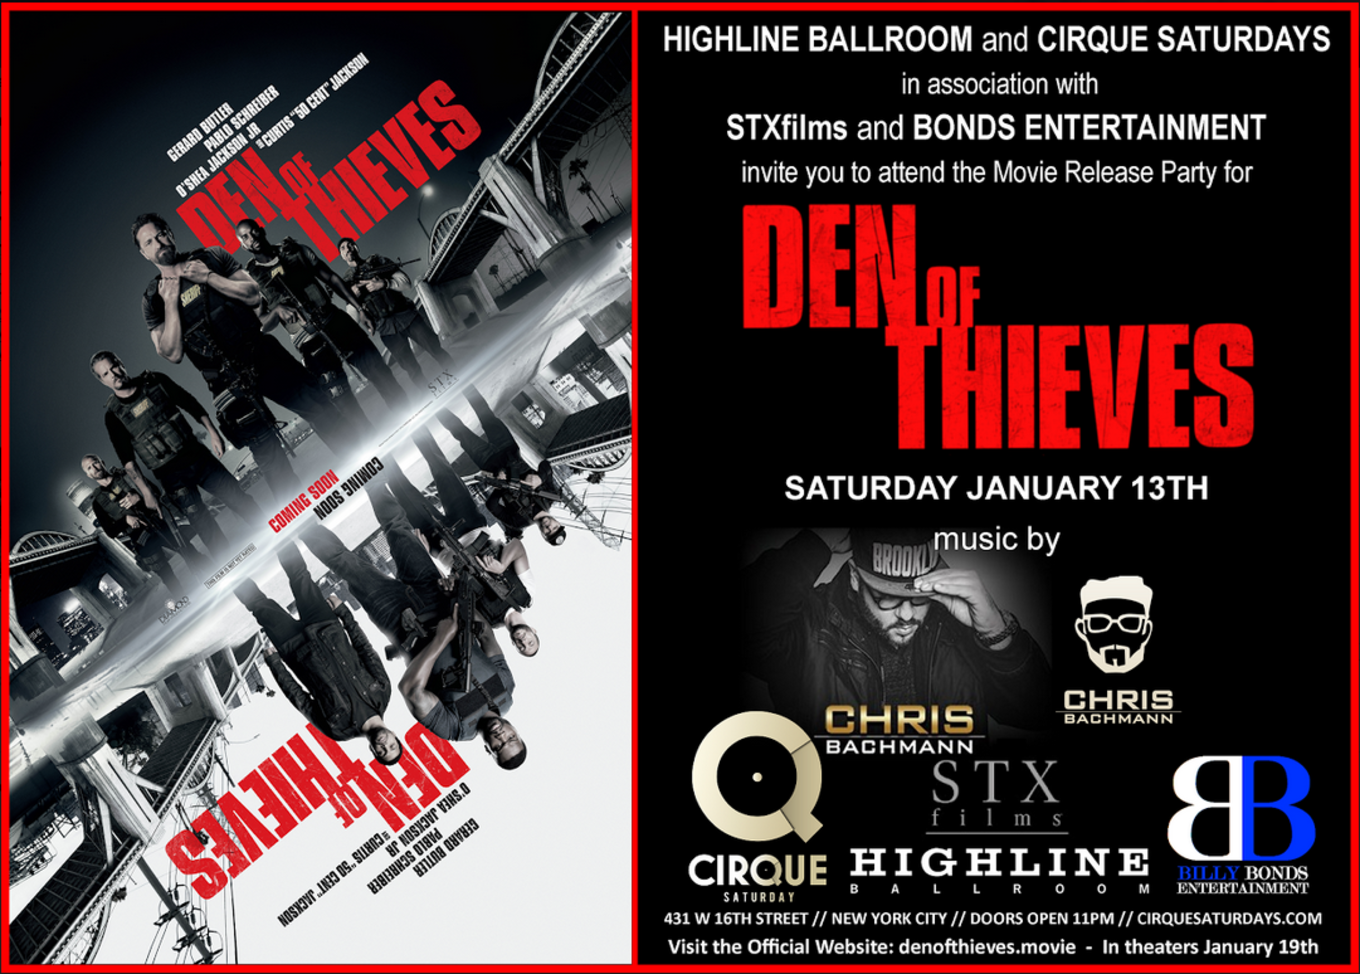 Den of Thieves Movie Release Party at Highline Ballroom 1/13 ...